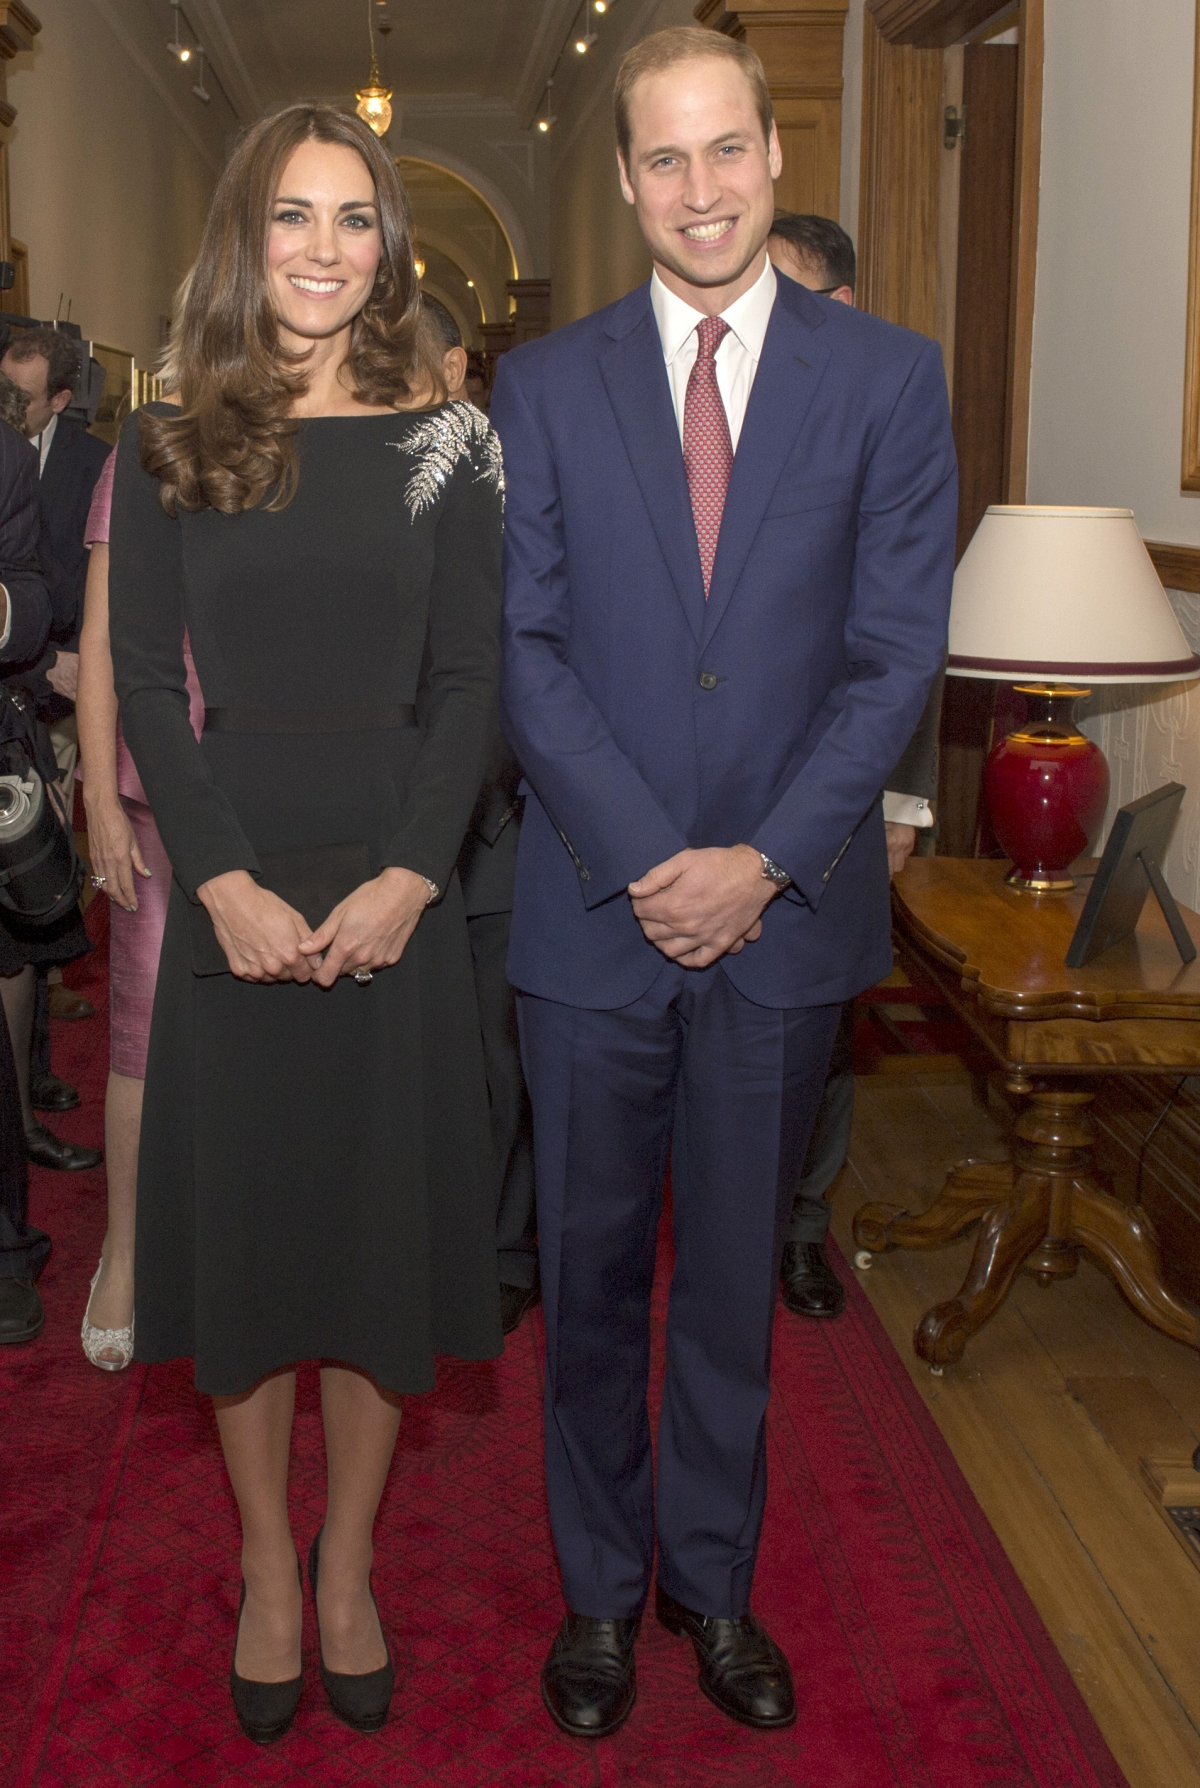 Kate Middleton Honours New Zealand In Silver Fern Gown